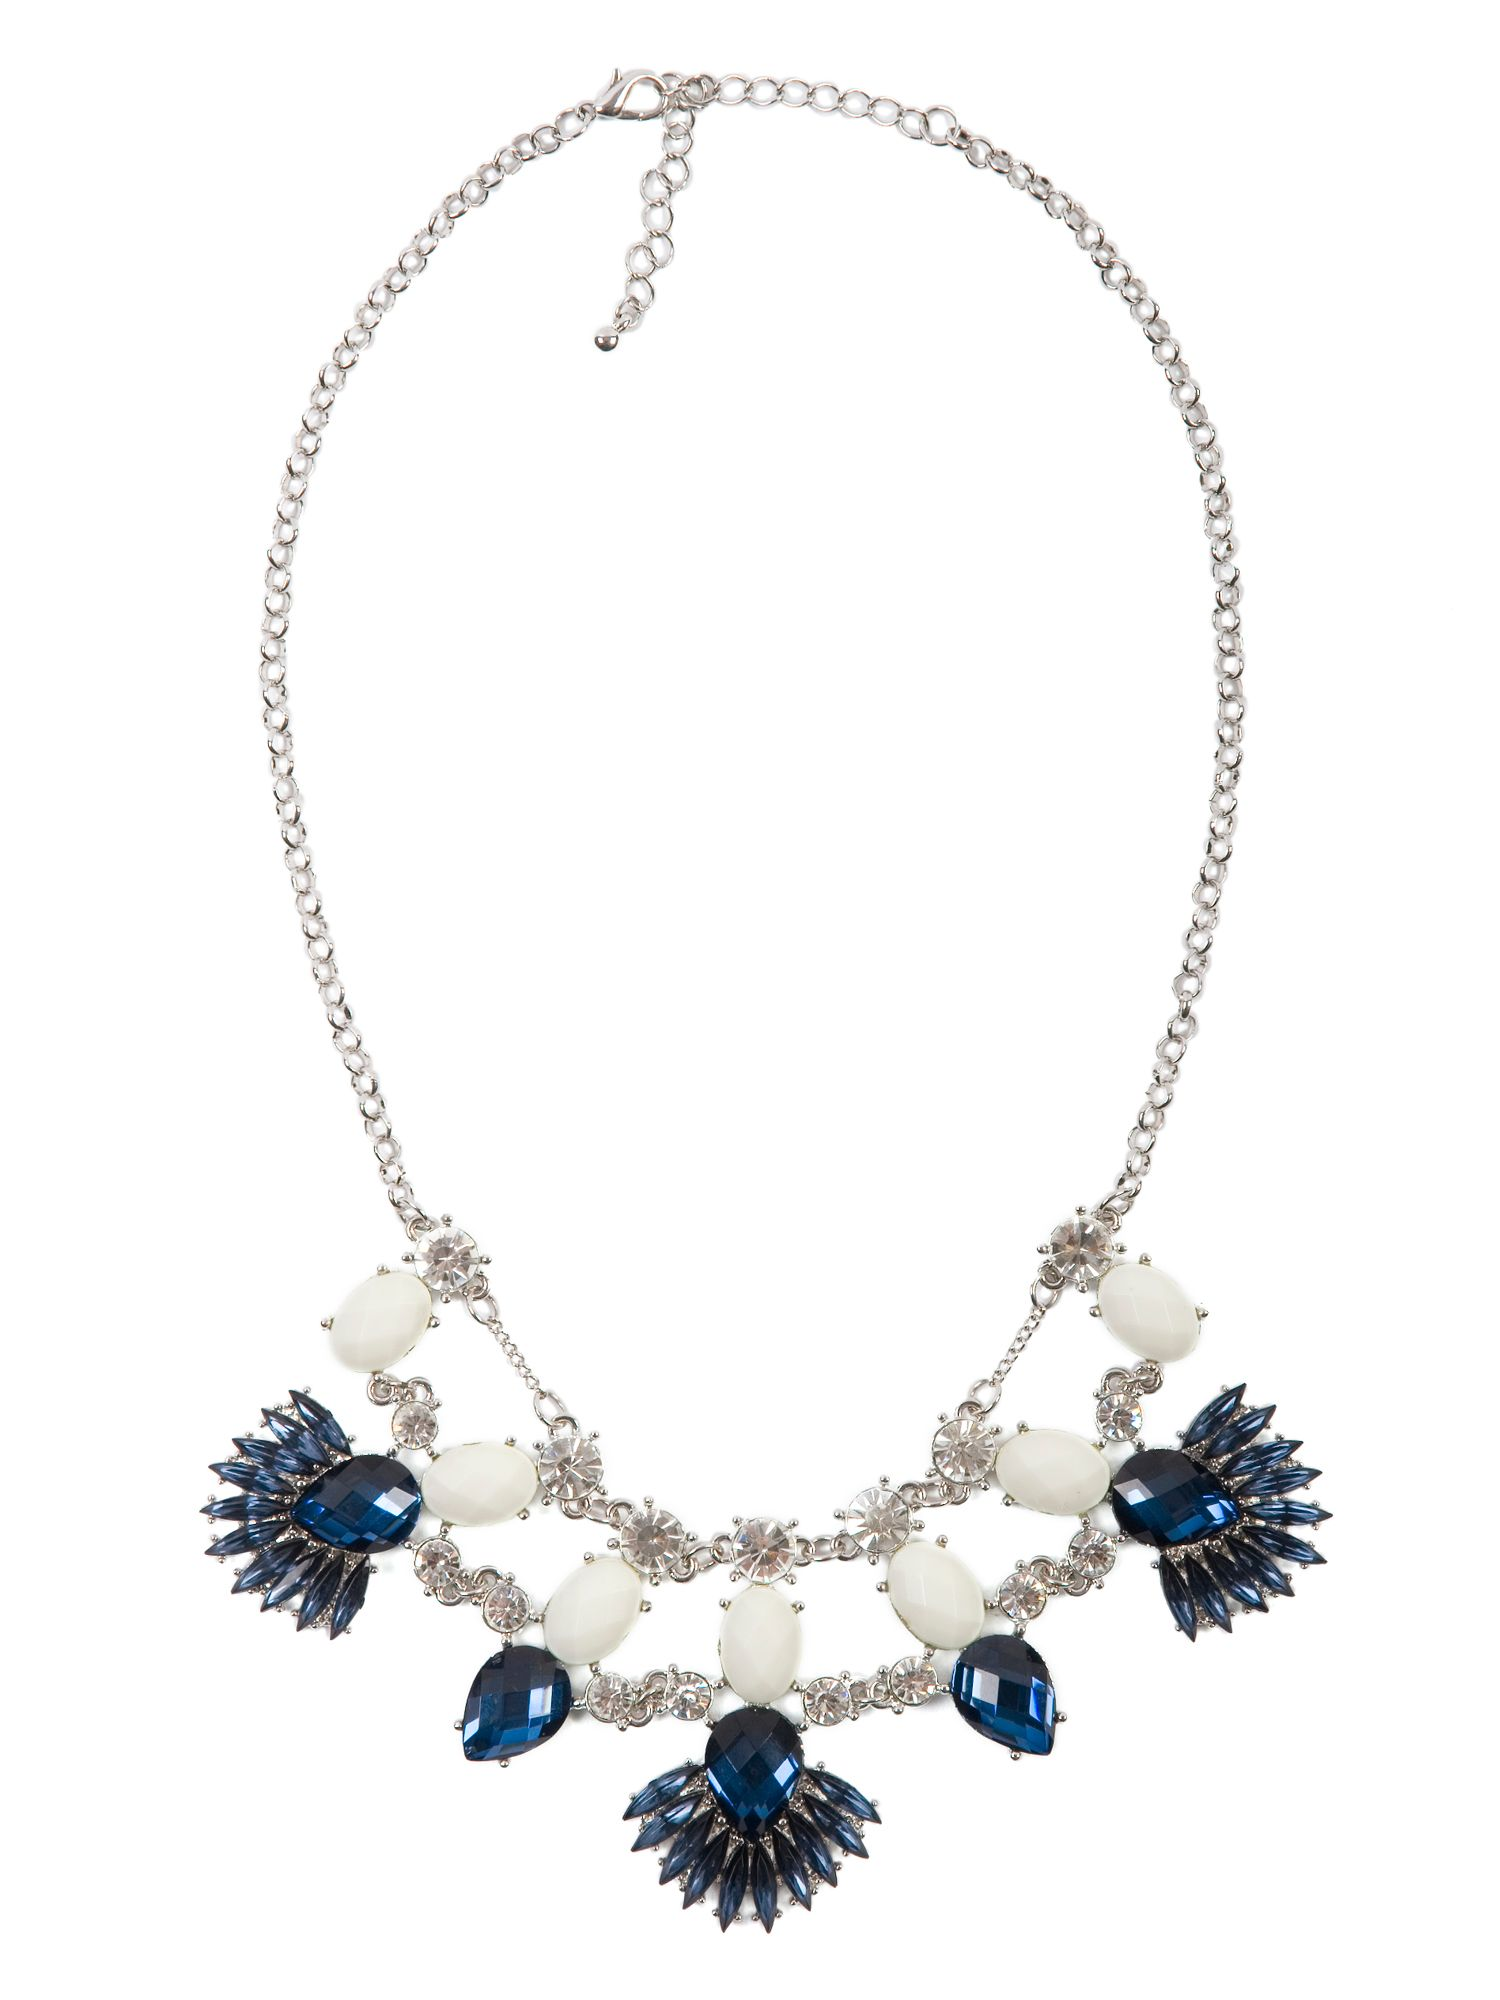 Vintage Style Jewelled Necklace